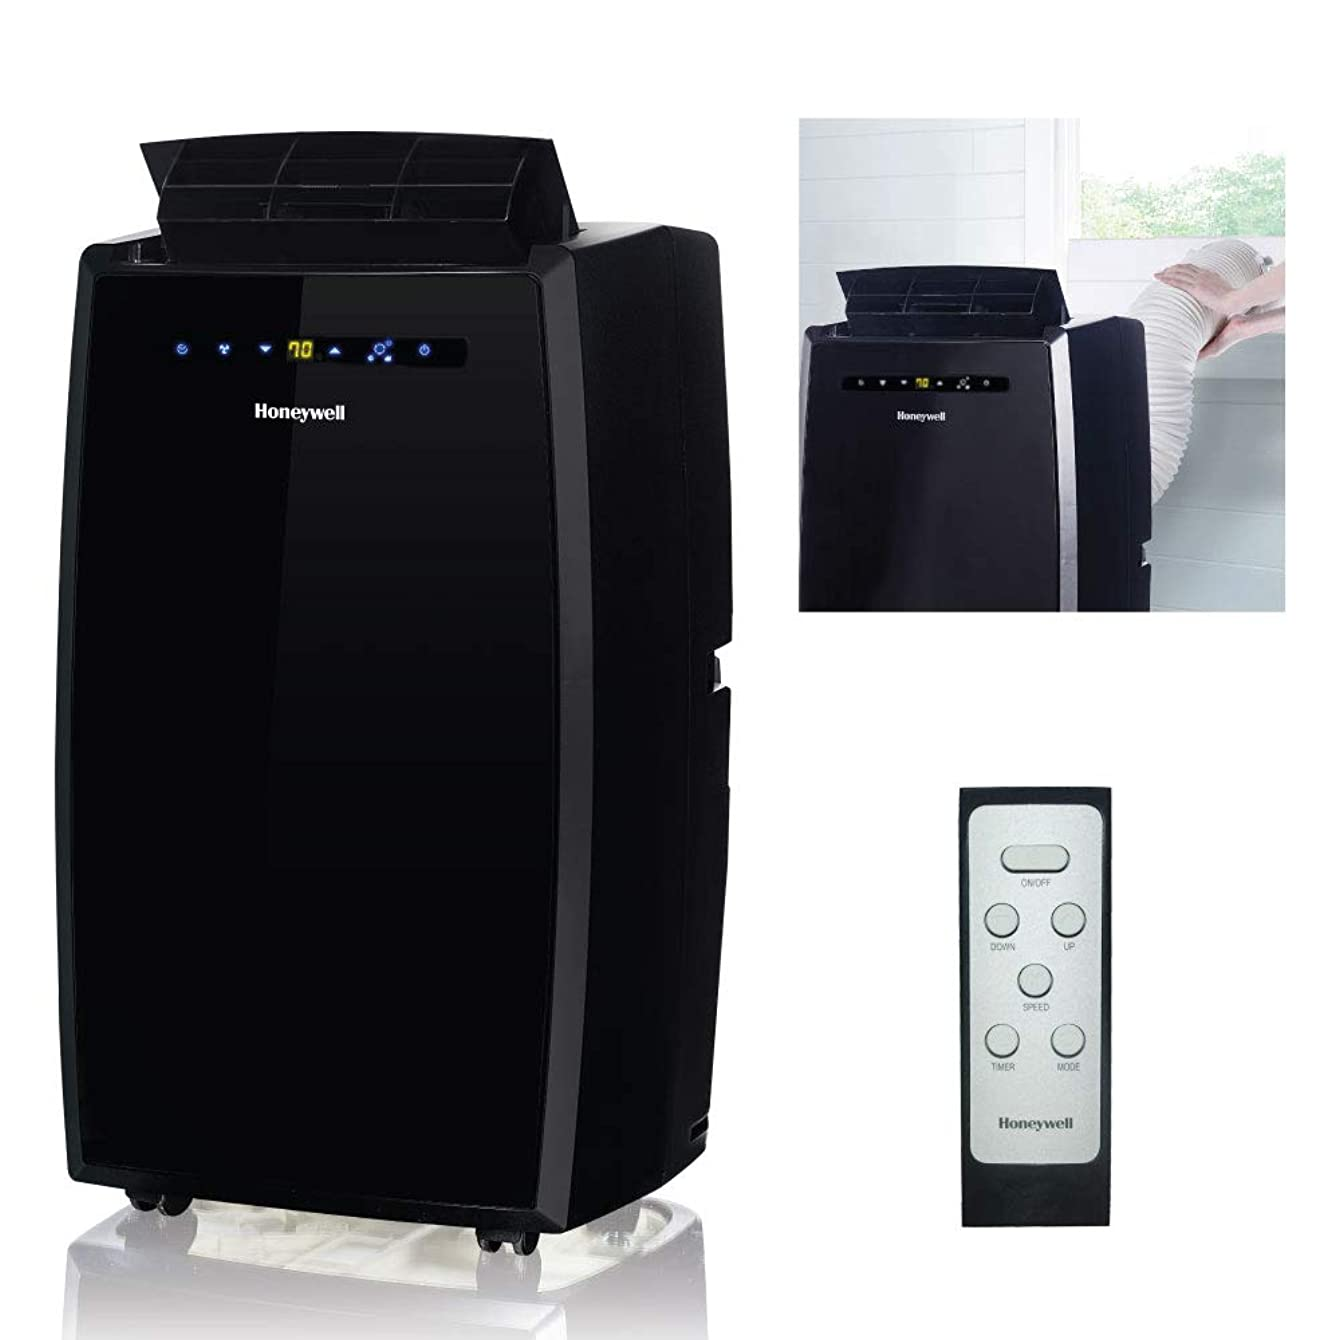 Honeywell MN12CESBB 12000 BTU Portable AC, Dehumidifier, Fan for Rooms Up To 400-550 Sq. Ft. with Thermal Overload Protection, Washable Air Filter & Remote Control dxerahbyirtpu20